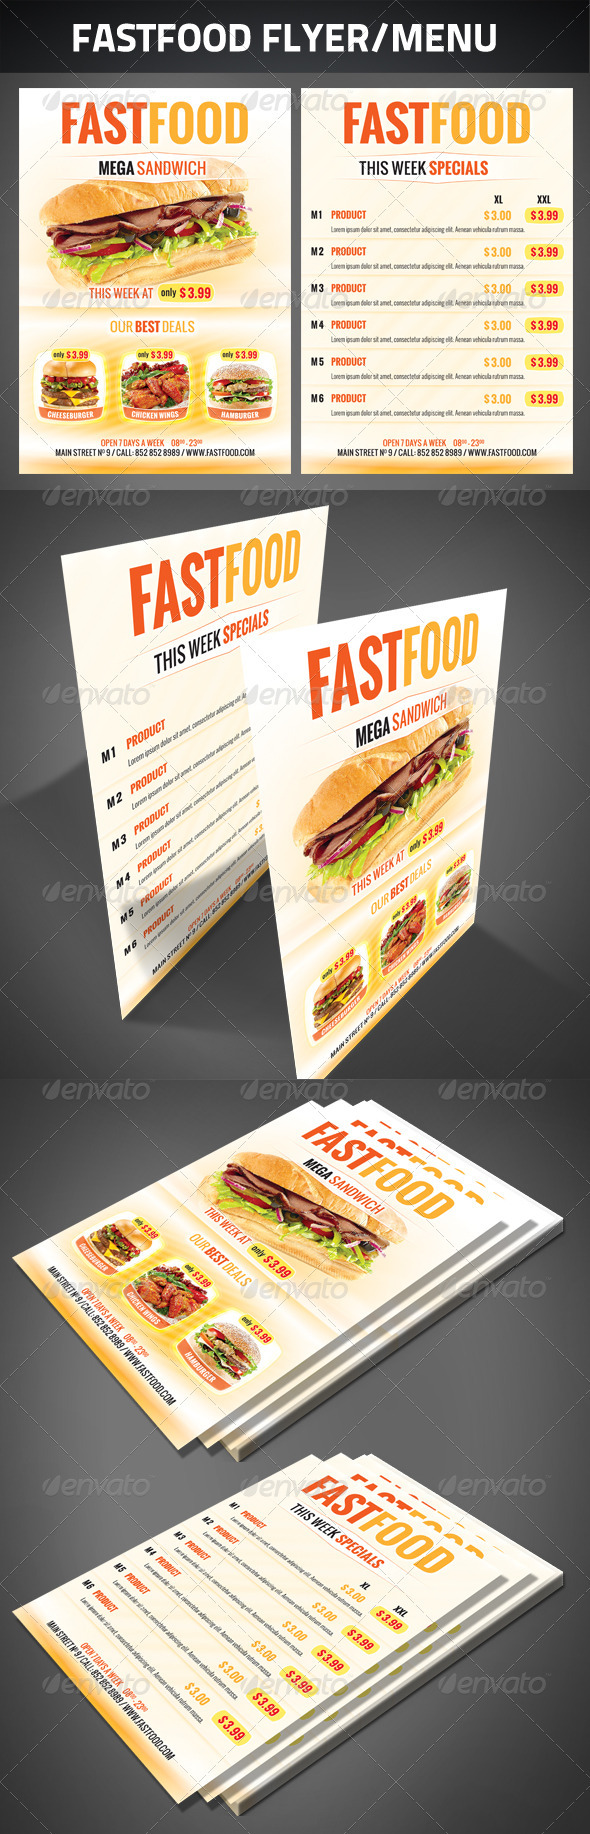 GraphicRiver FastFood Flyer 2631106